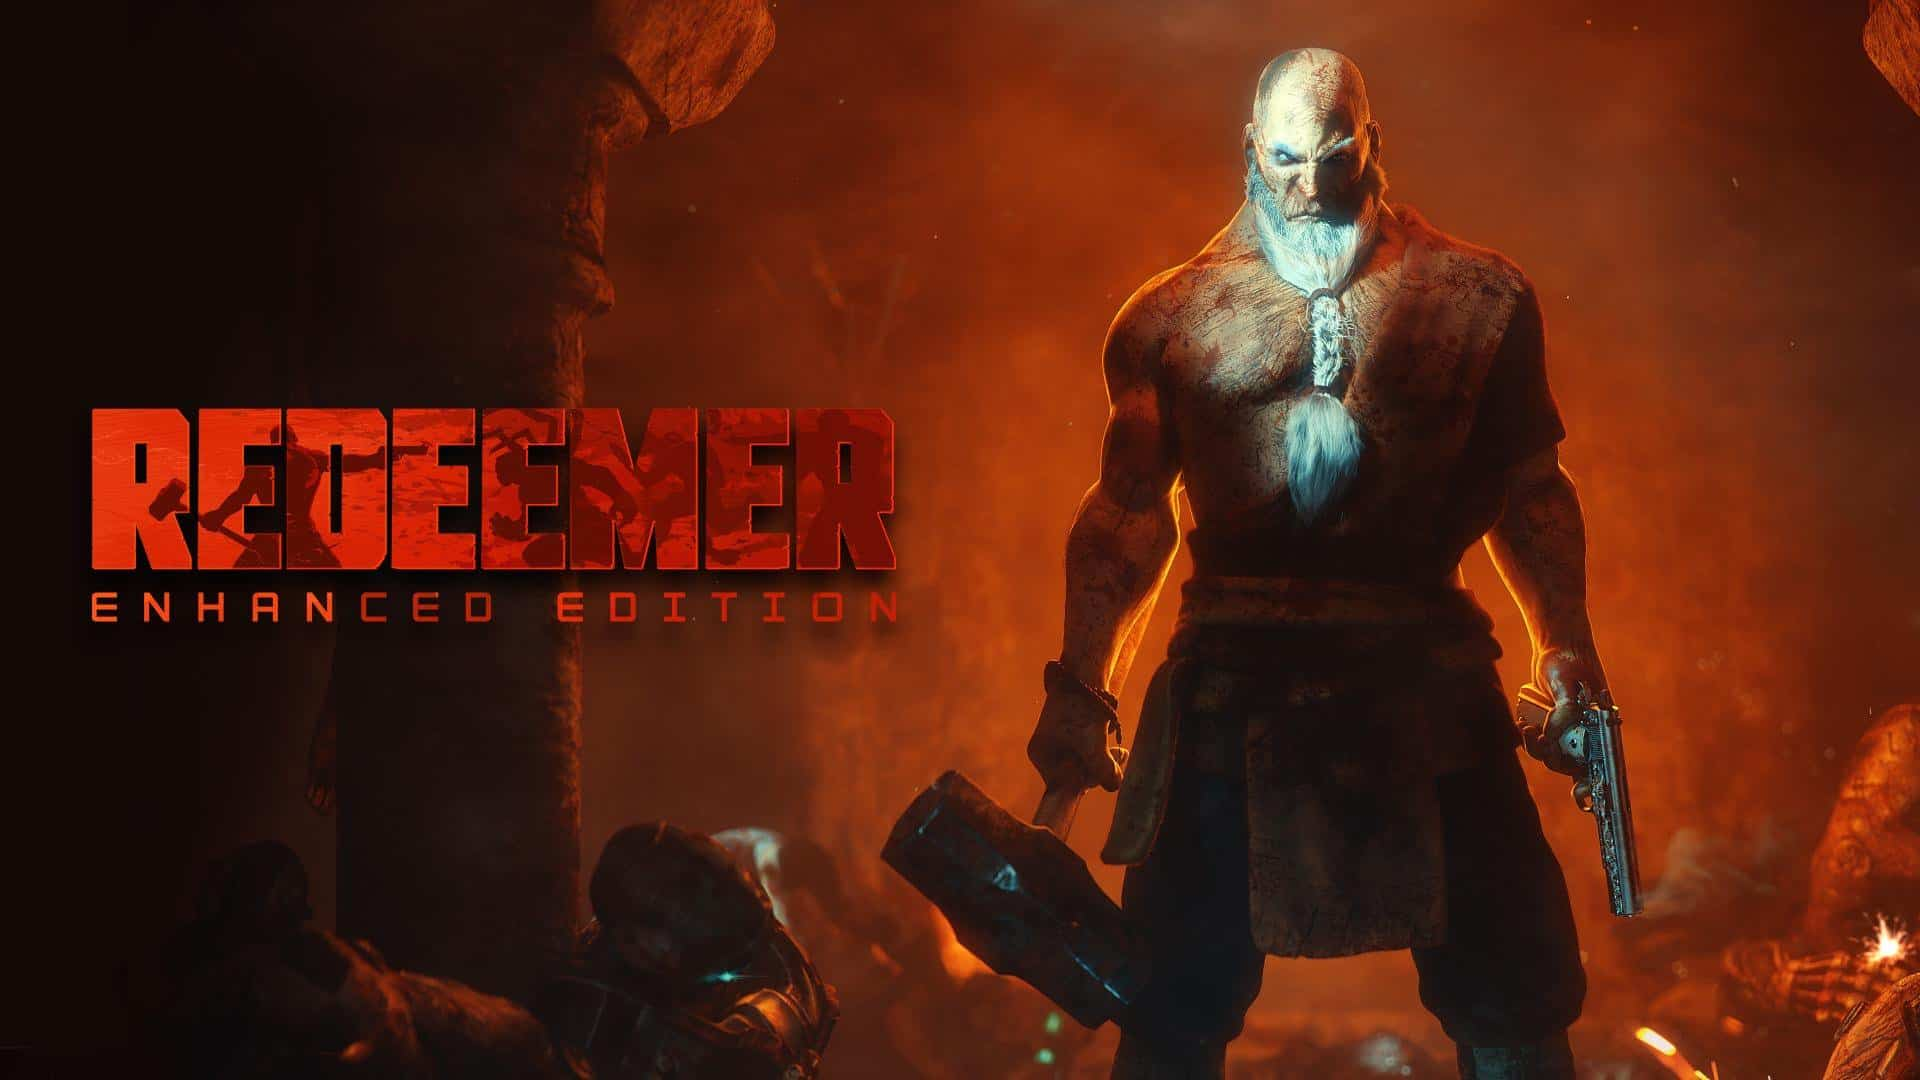 Redeemer: Enhanced Edition Will Be Available On The 12th of July, 2019